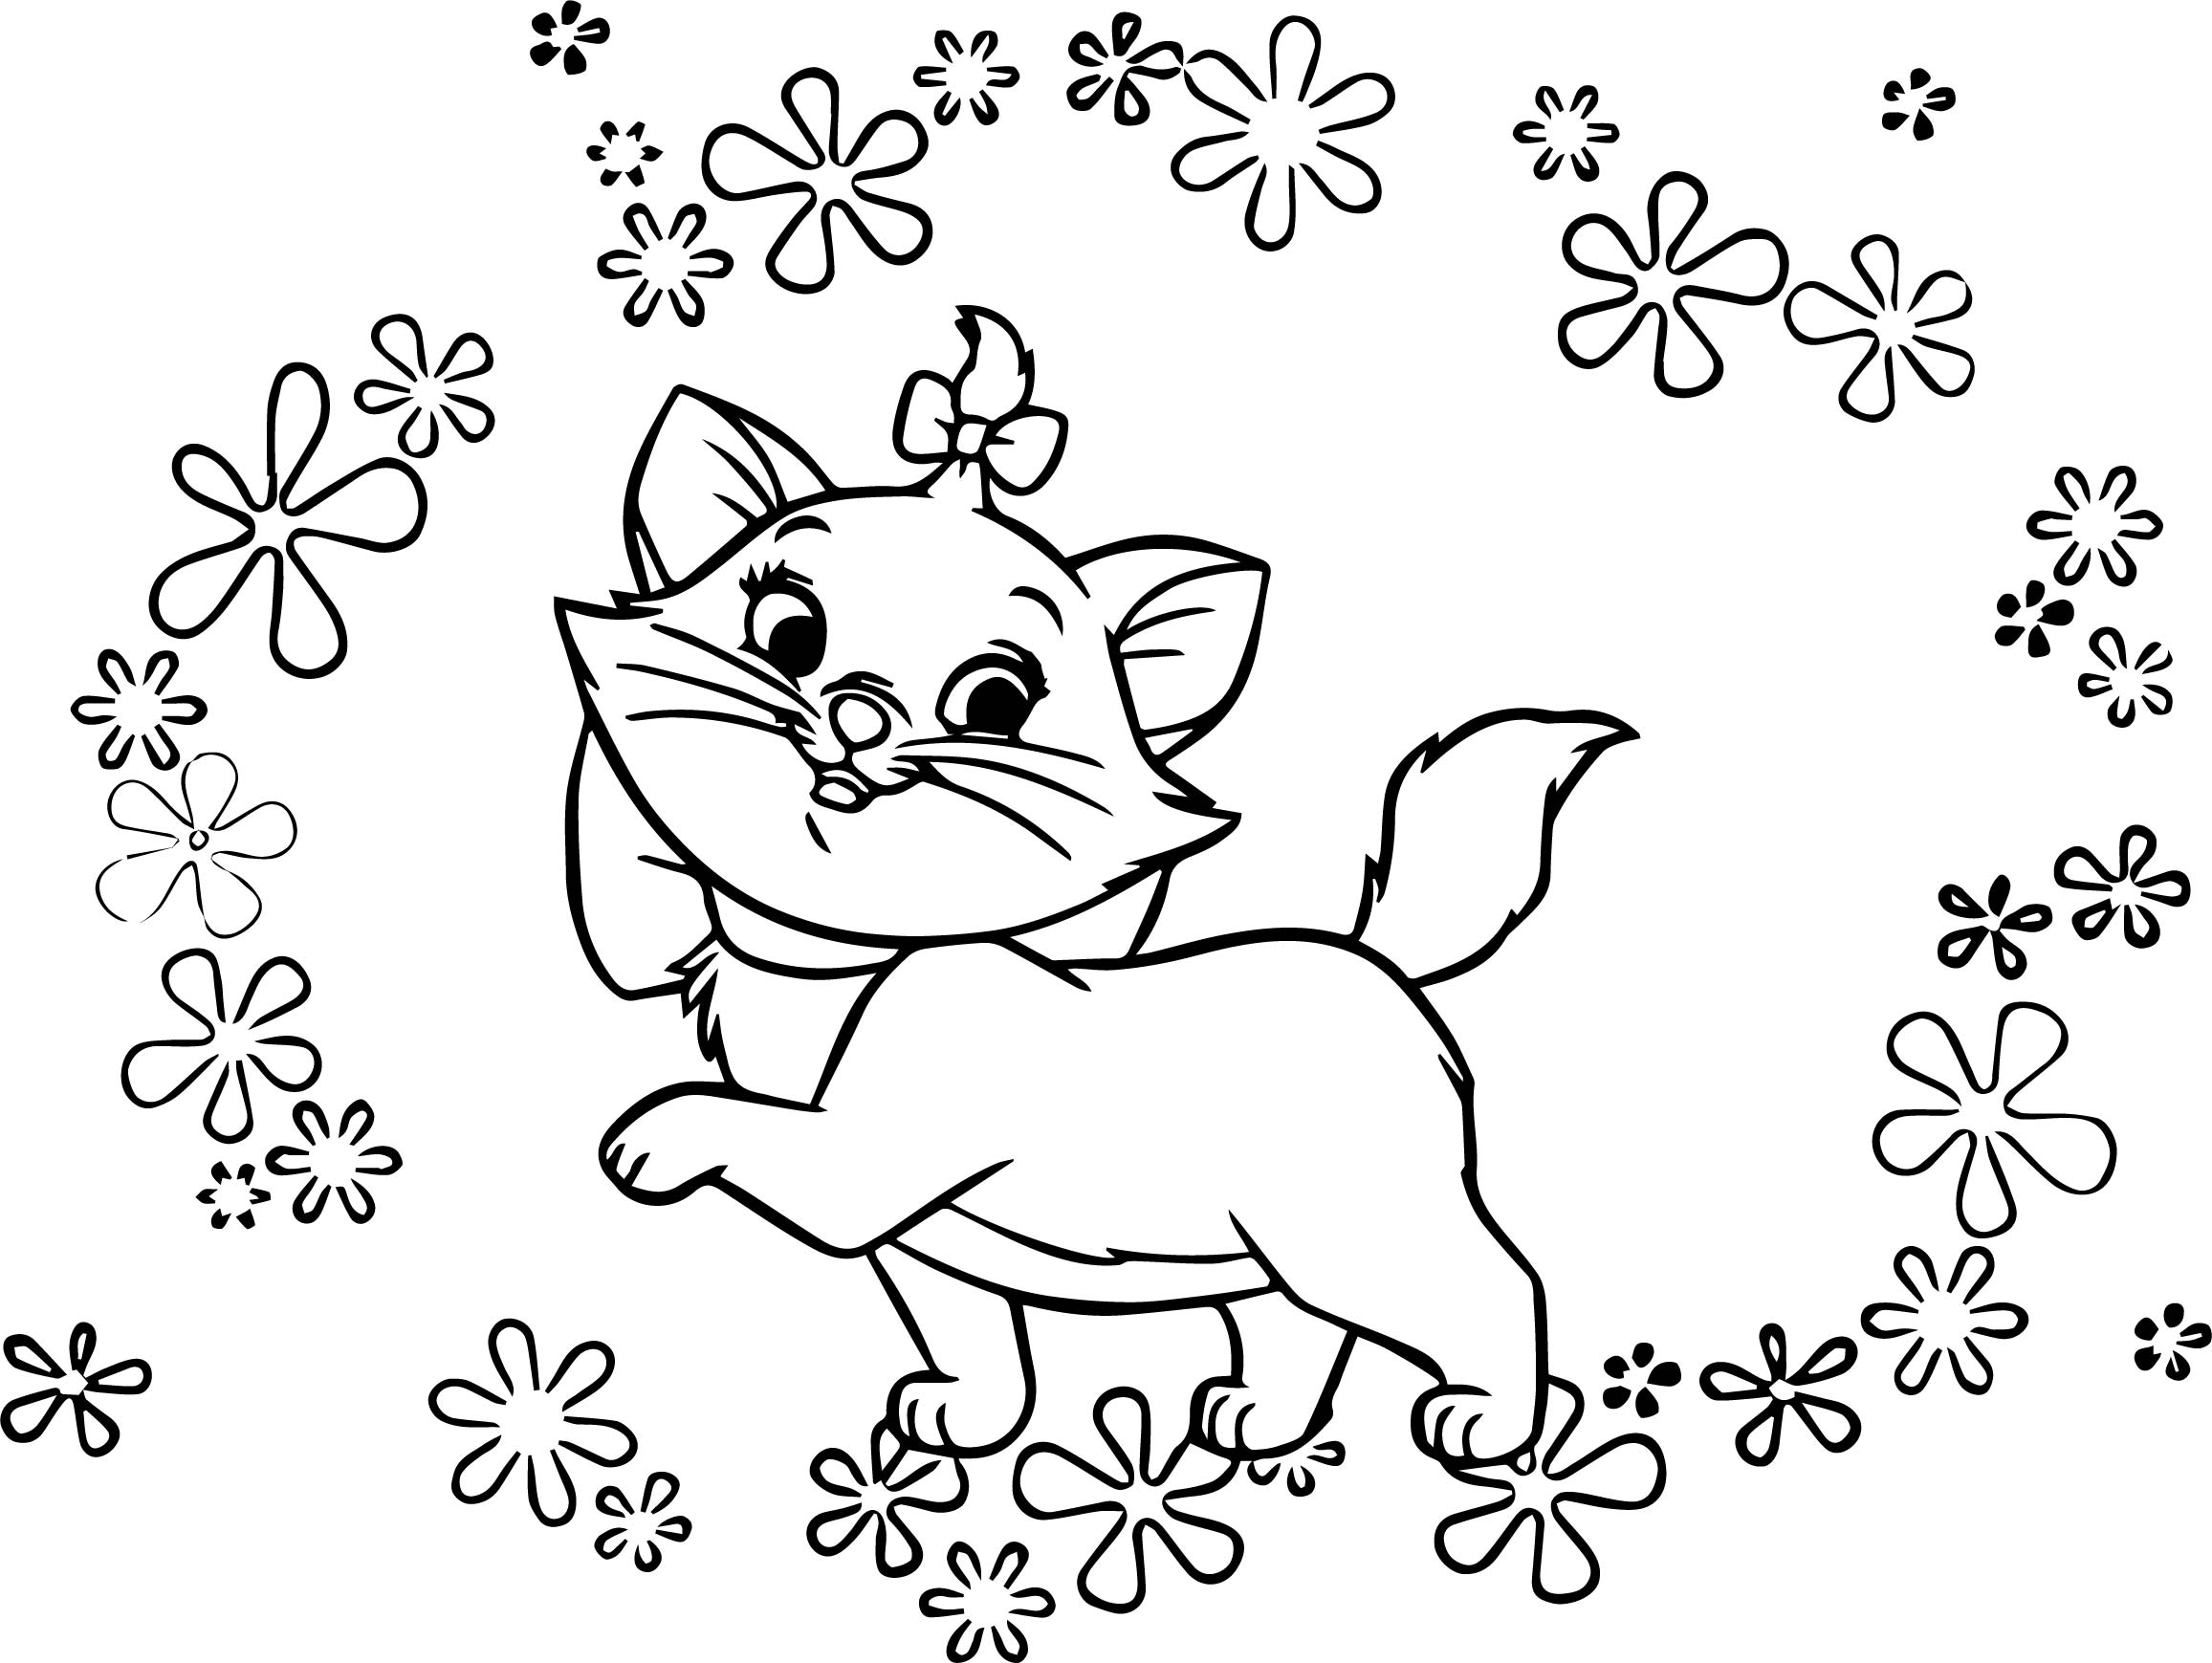 Disney The Flowers Aristocats Coloring Page ...